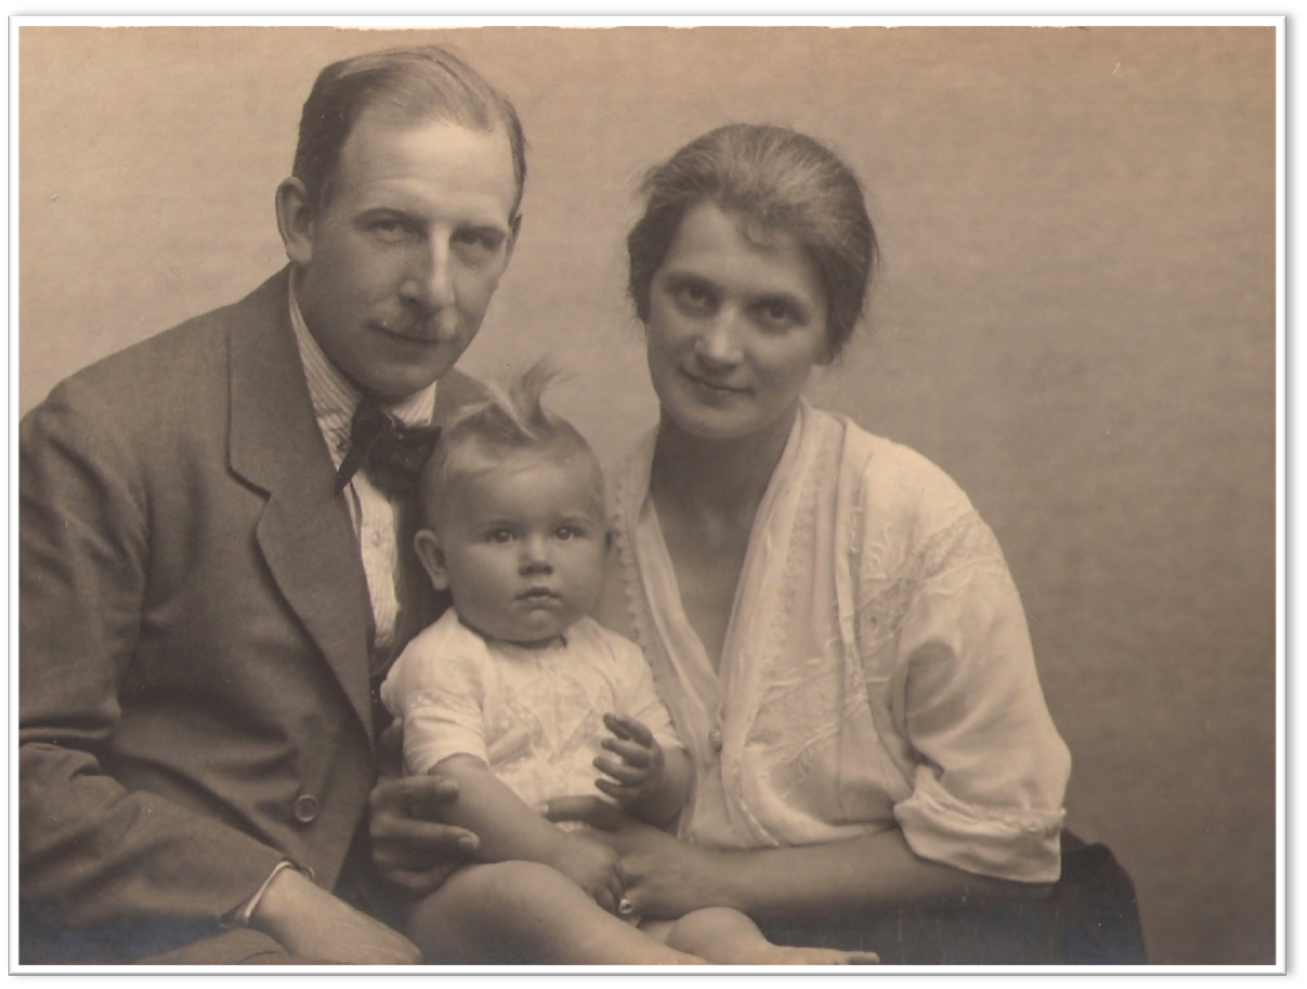 Vassili Vassilievitch and Sophia (née Ostrorog-Sadkowska) with their daughter Varvara Vassilievna in 1922